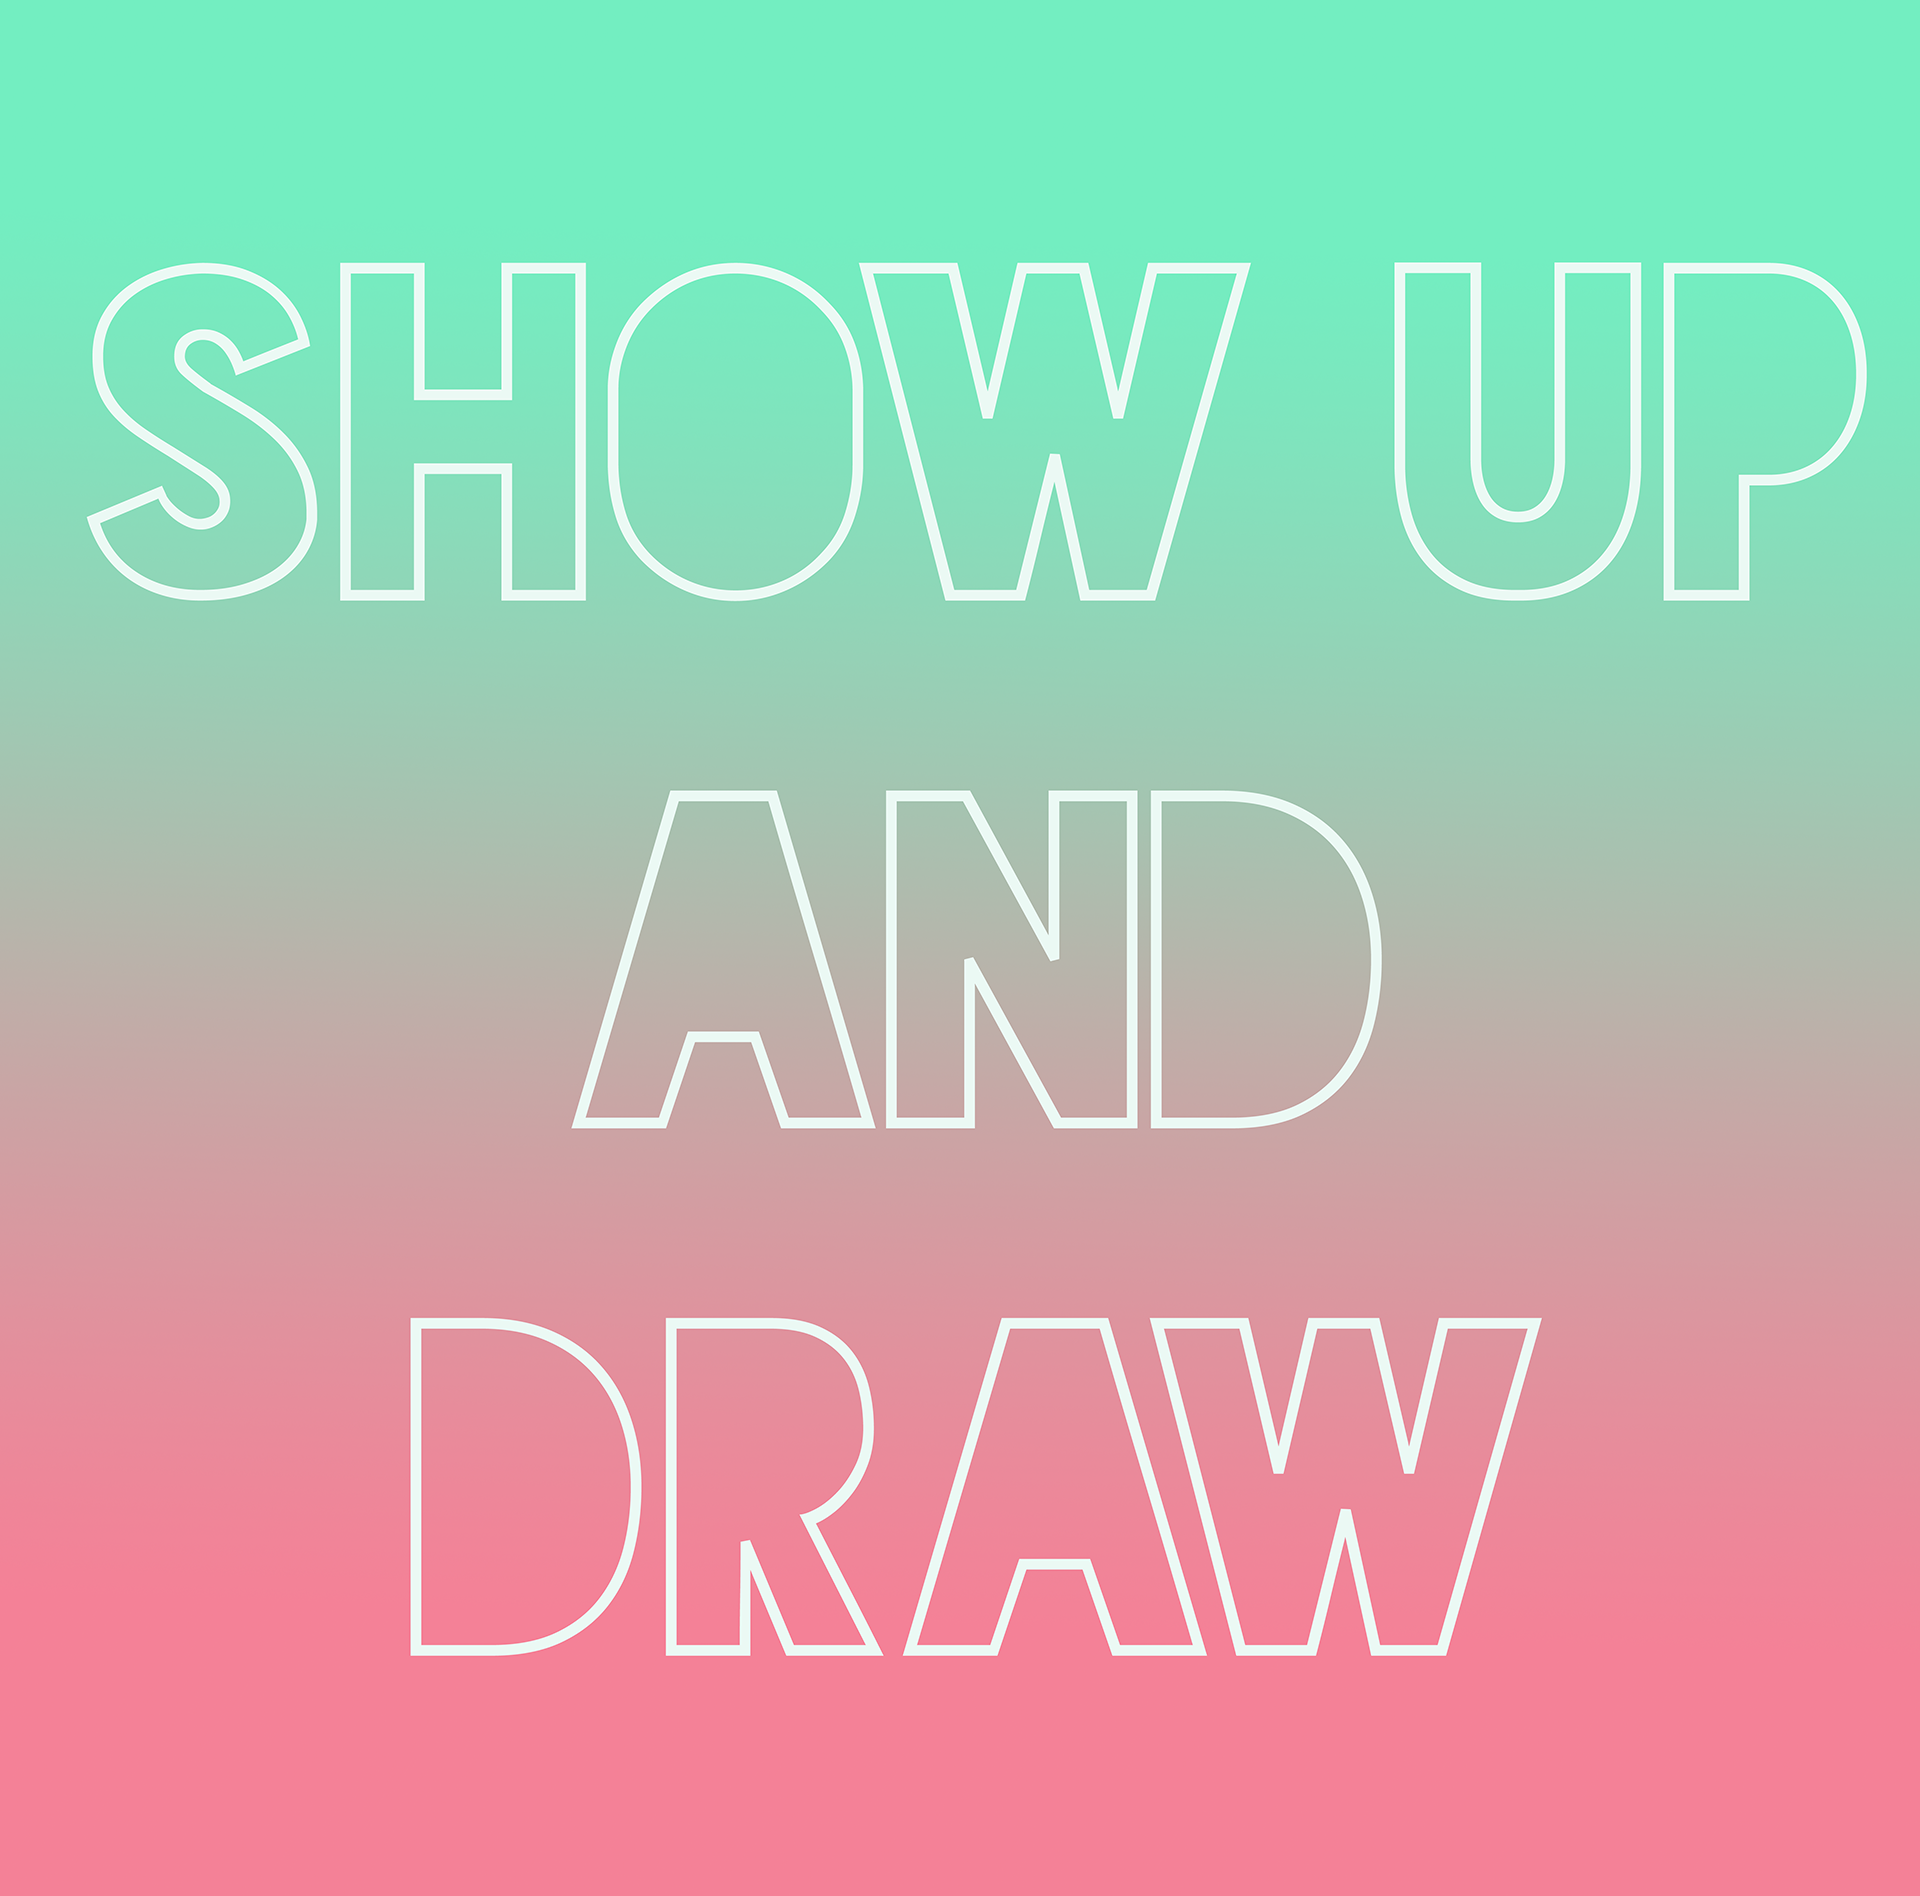 Show Up and Draw (design+motto)